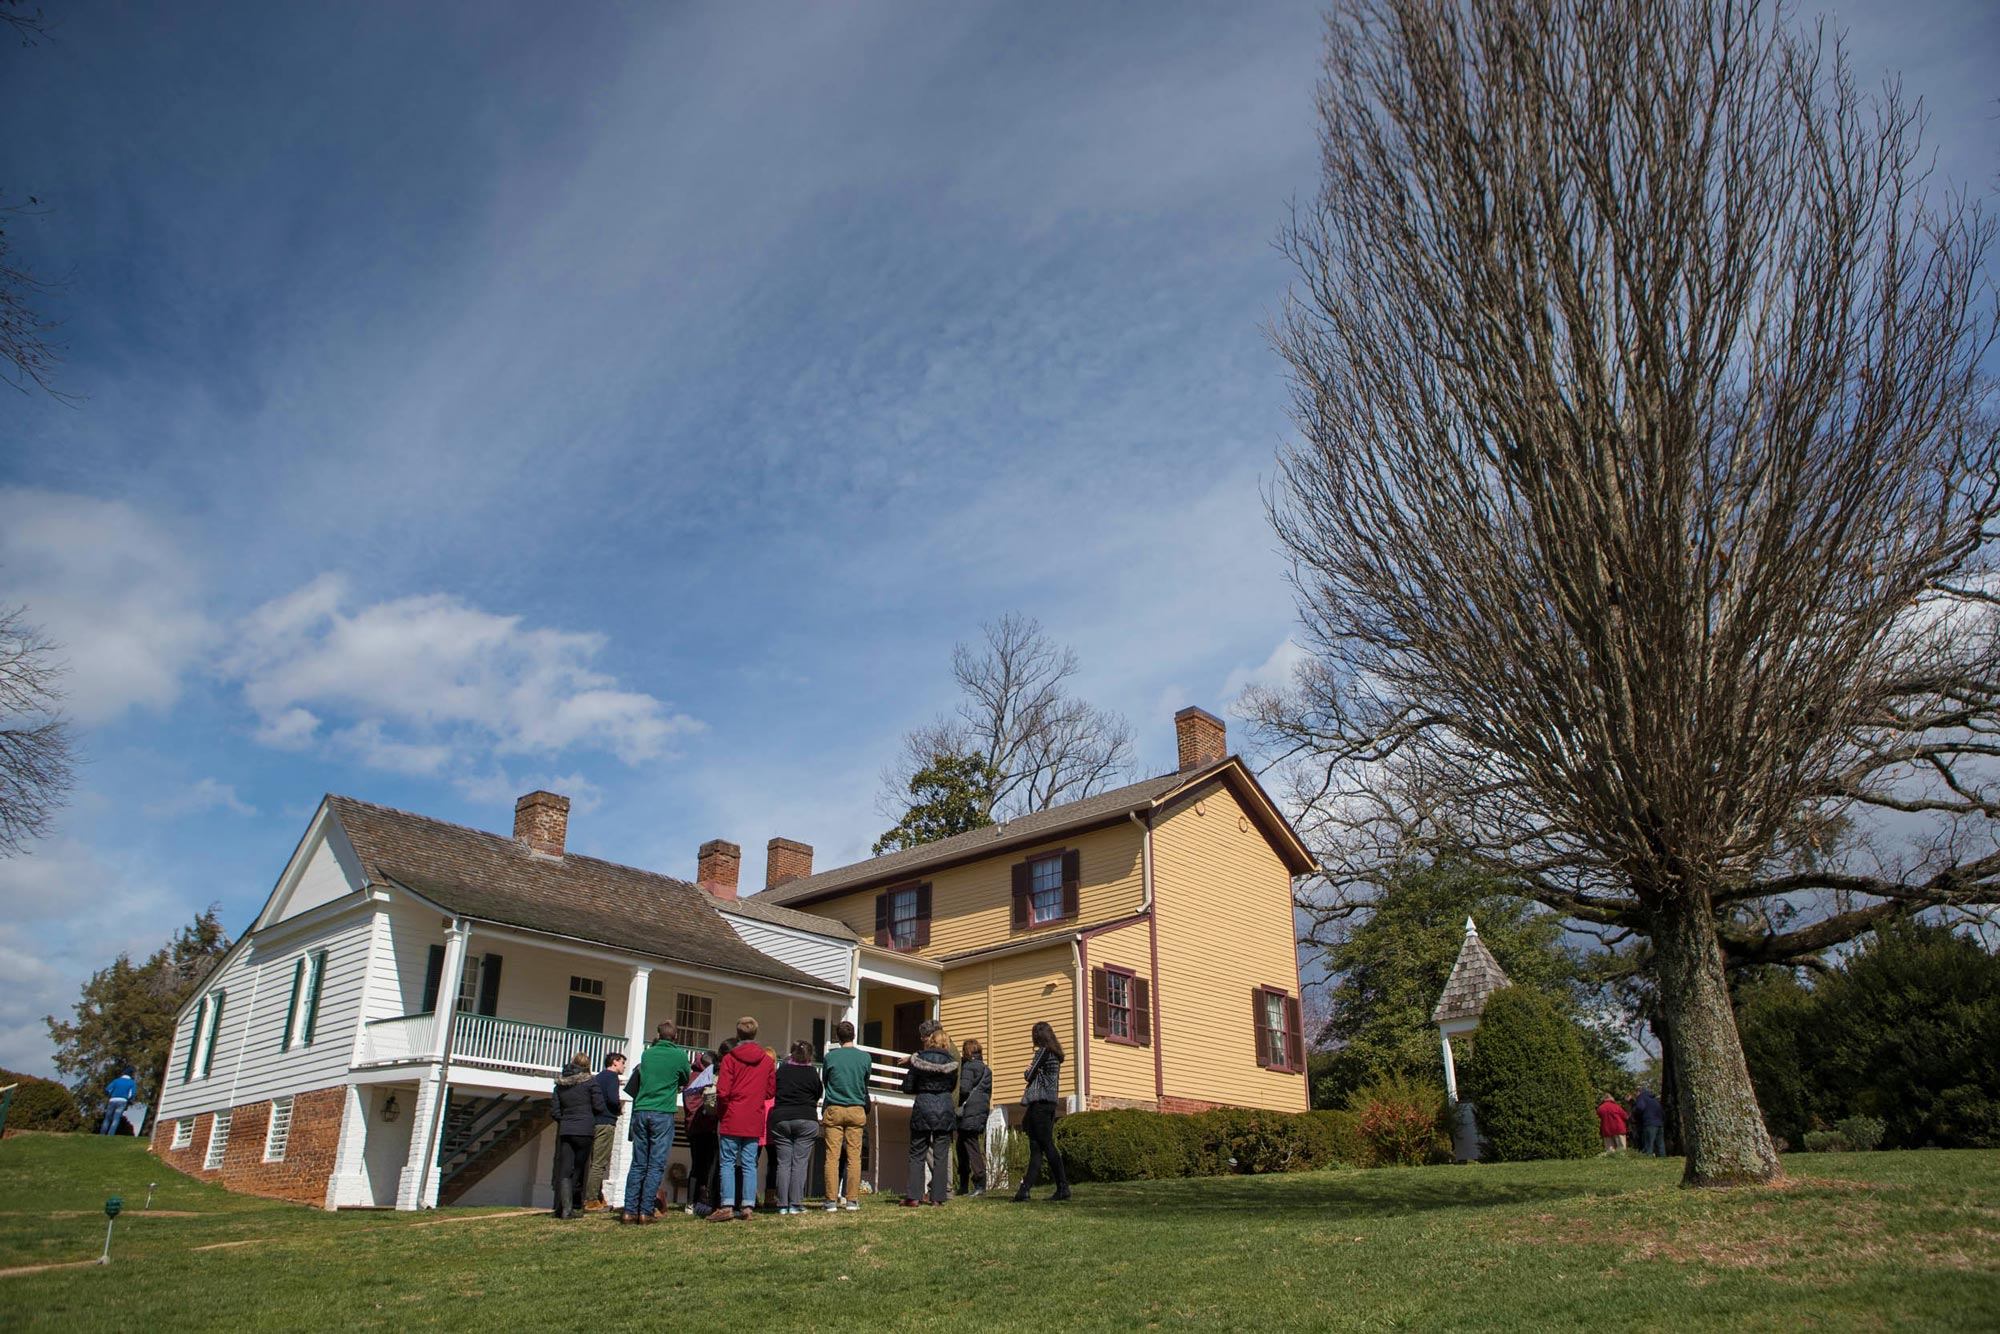 Above, the white house behind the students is now believed to have been Monroe's guest house. Remains of his original home have been discovered in front of the adjoining building, called the Massey House.